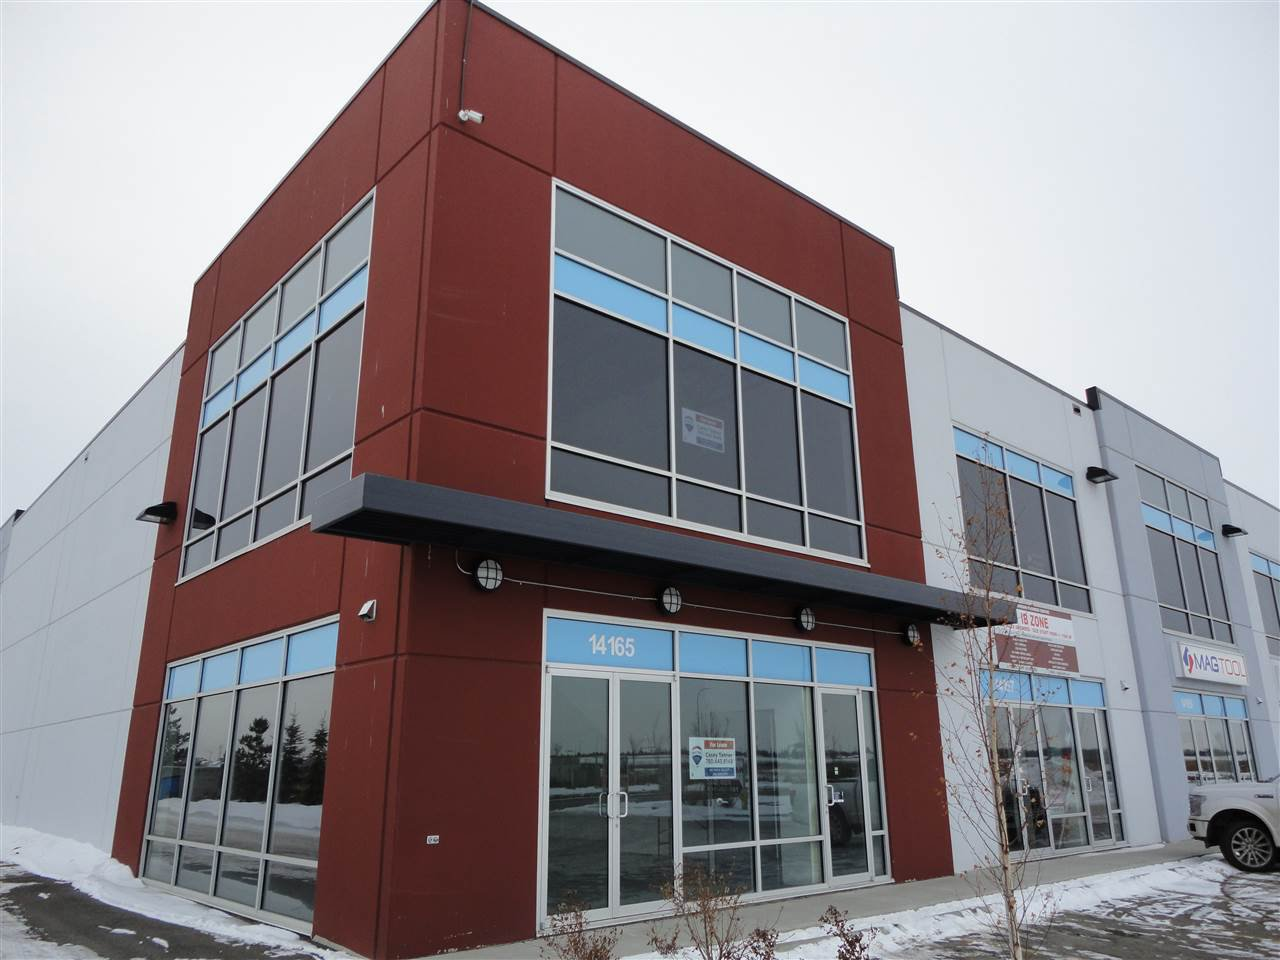 Main Photo: 14165 162 Avenue NW in Edmonton: Zone 40 Office for lease : MLS®# E4183721